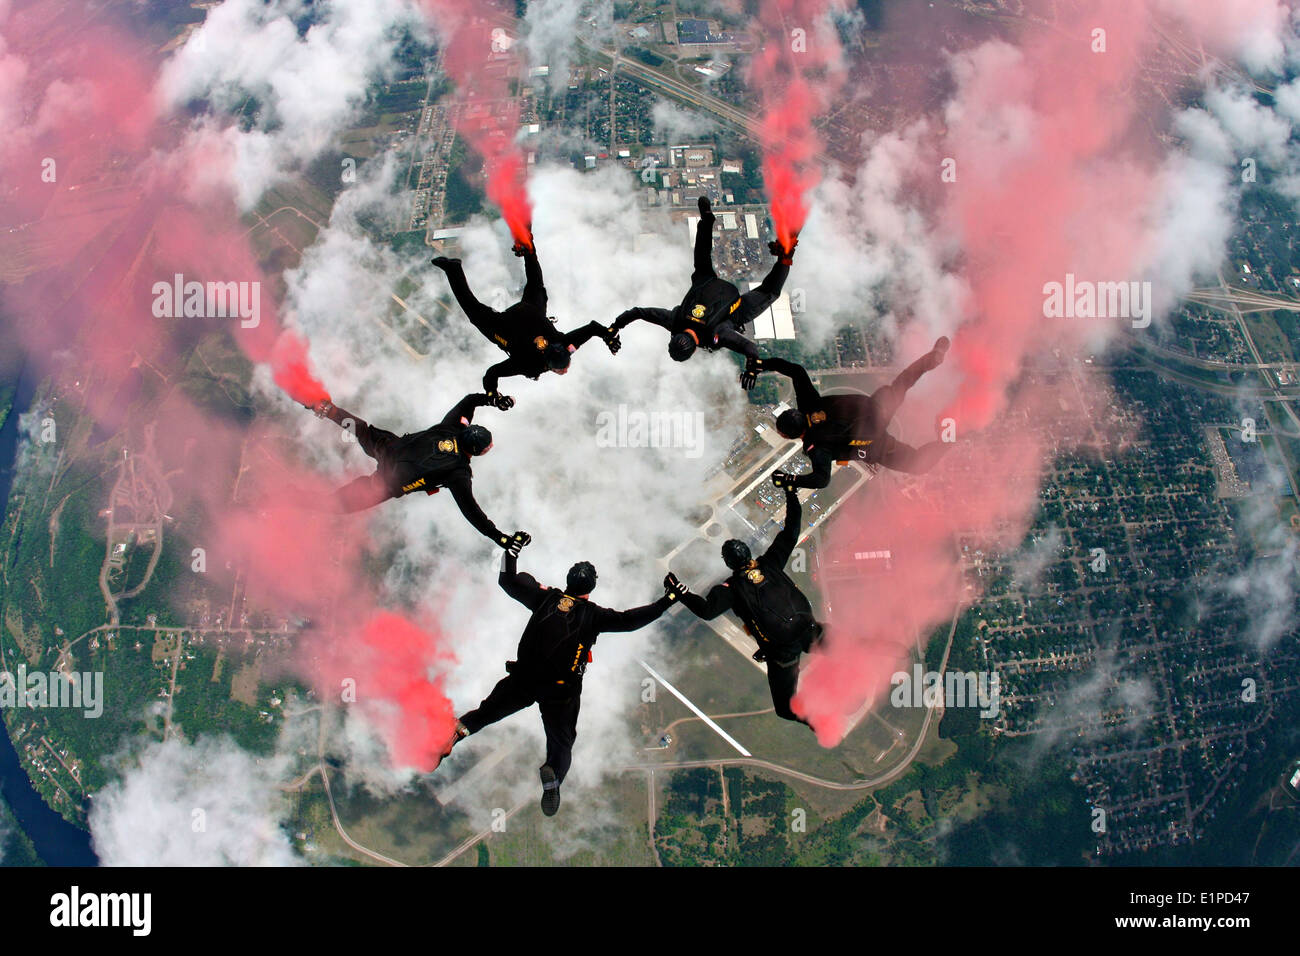 US Army Golden Knights Parachute Team practice a free fall with smoke June 4, 2010 over Eau Claire, Wisconsin. - Stock Image